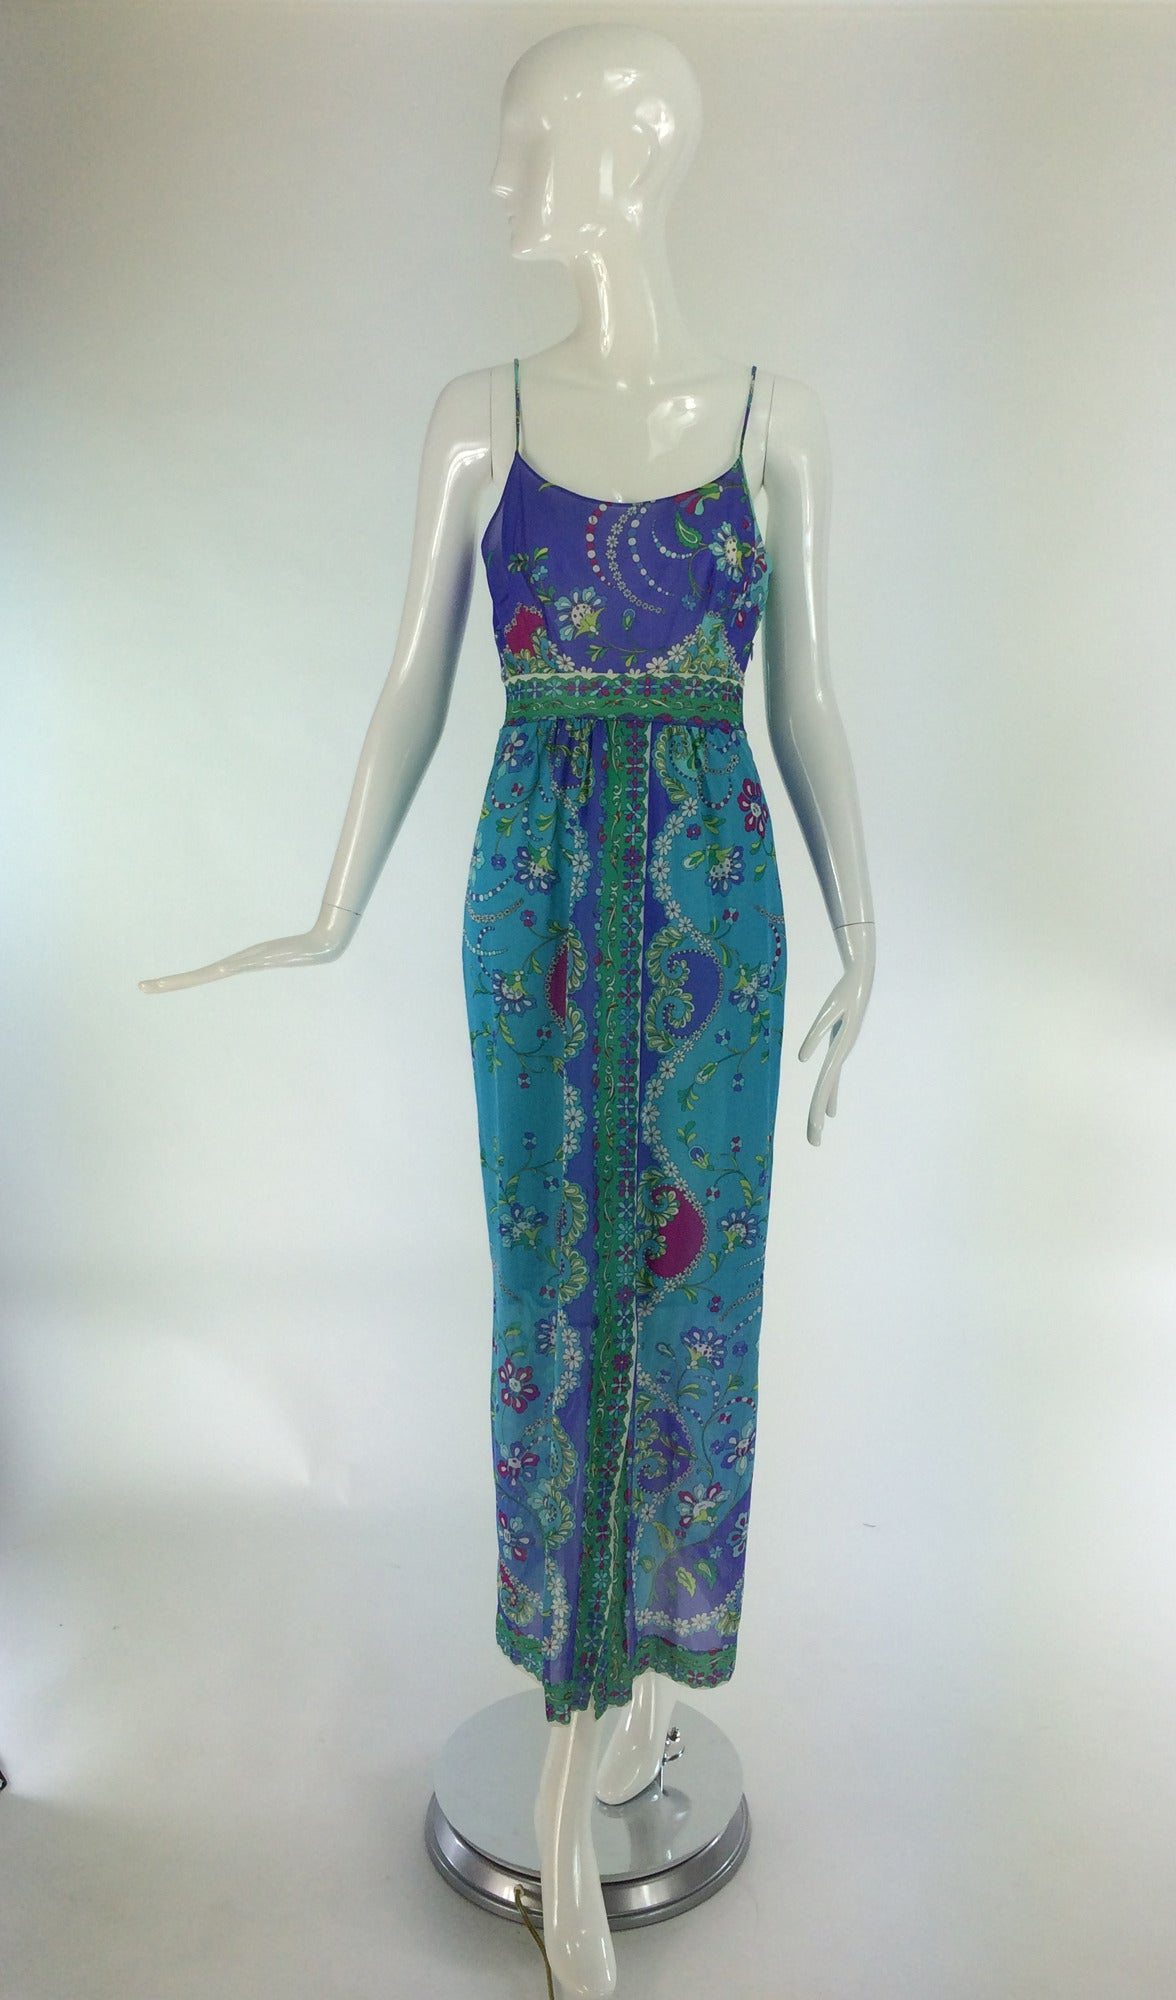 Emilio Pucci for Formfit Rogers at home gown from the 1960s...Dramatic colours bring to mind tropical waters...Perfect for pool side entertaining...Fitted scoop neck bodice is darted, has narrow shoulder straps and has a band below the bust...Seamed